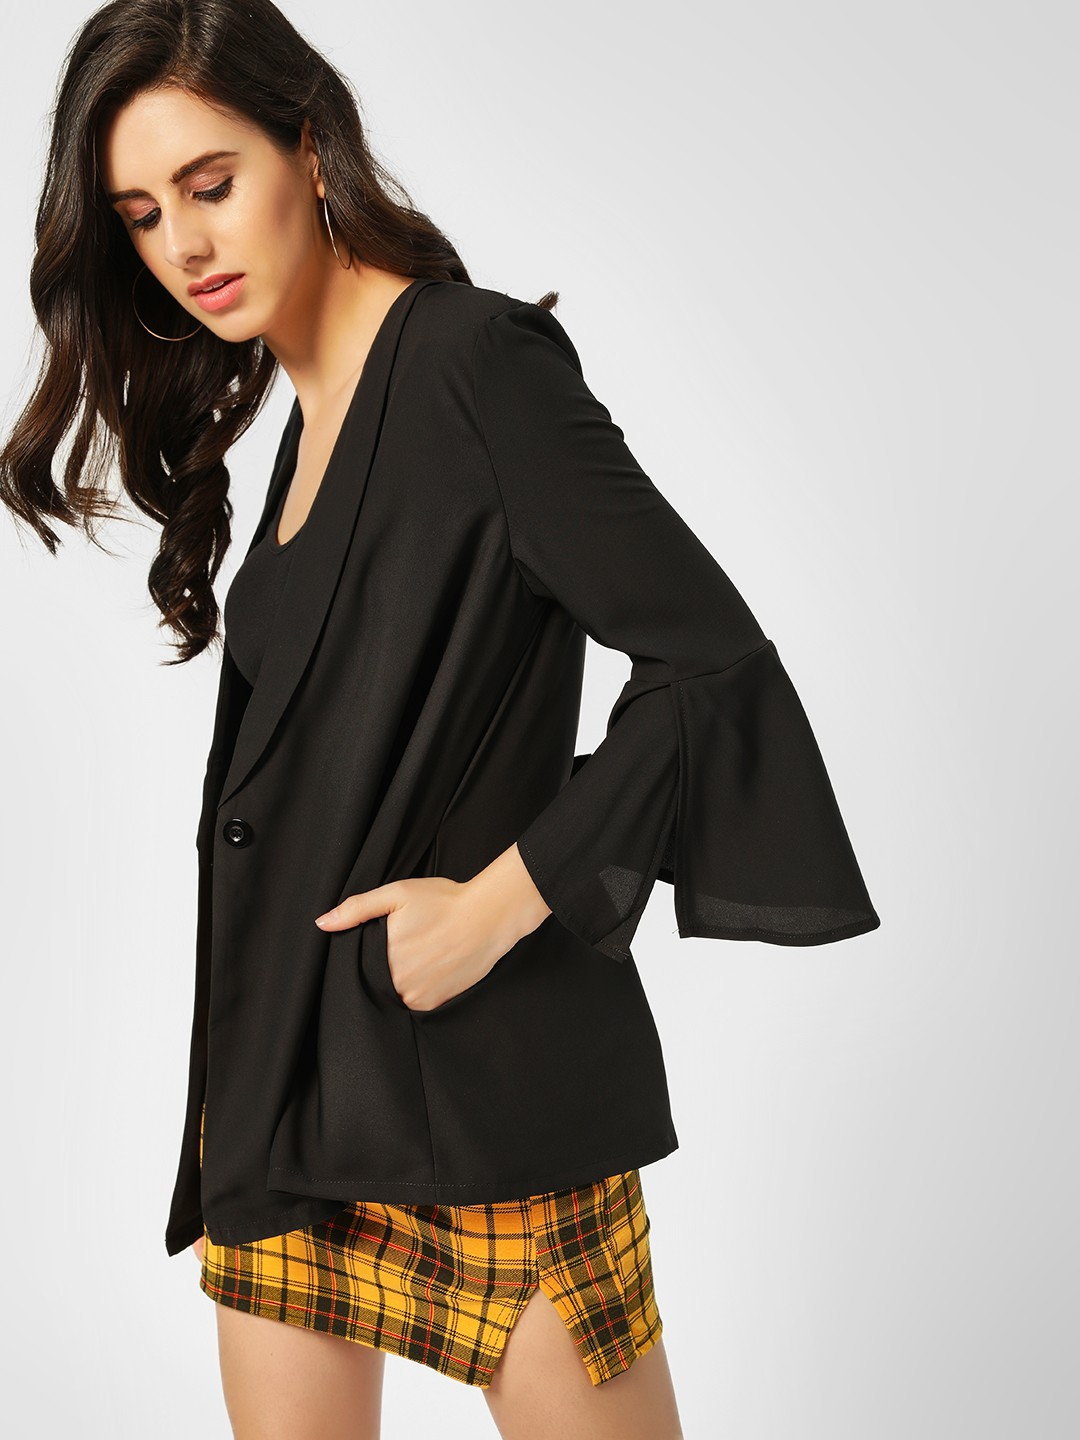 Lola May Black Bell Sleeve Relaxed Blazer 1